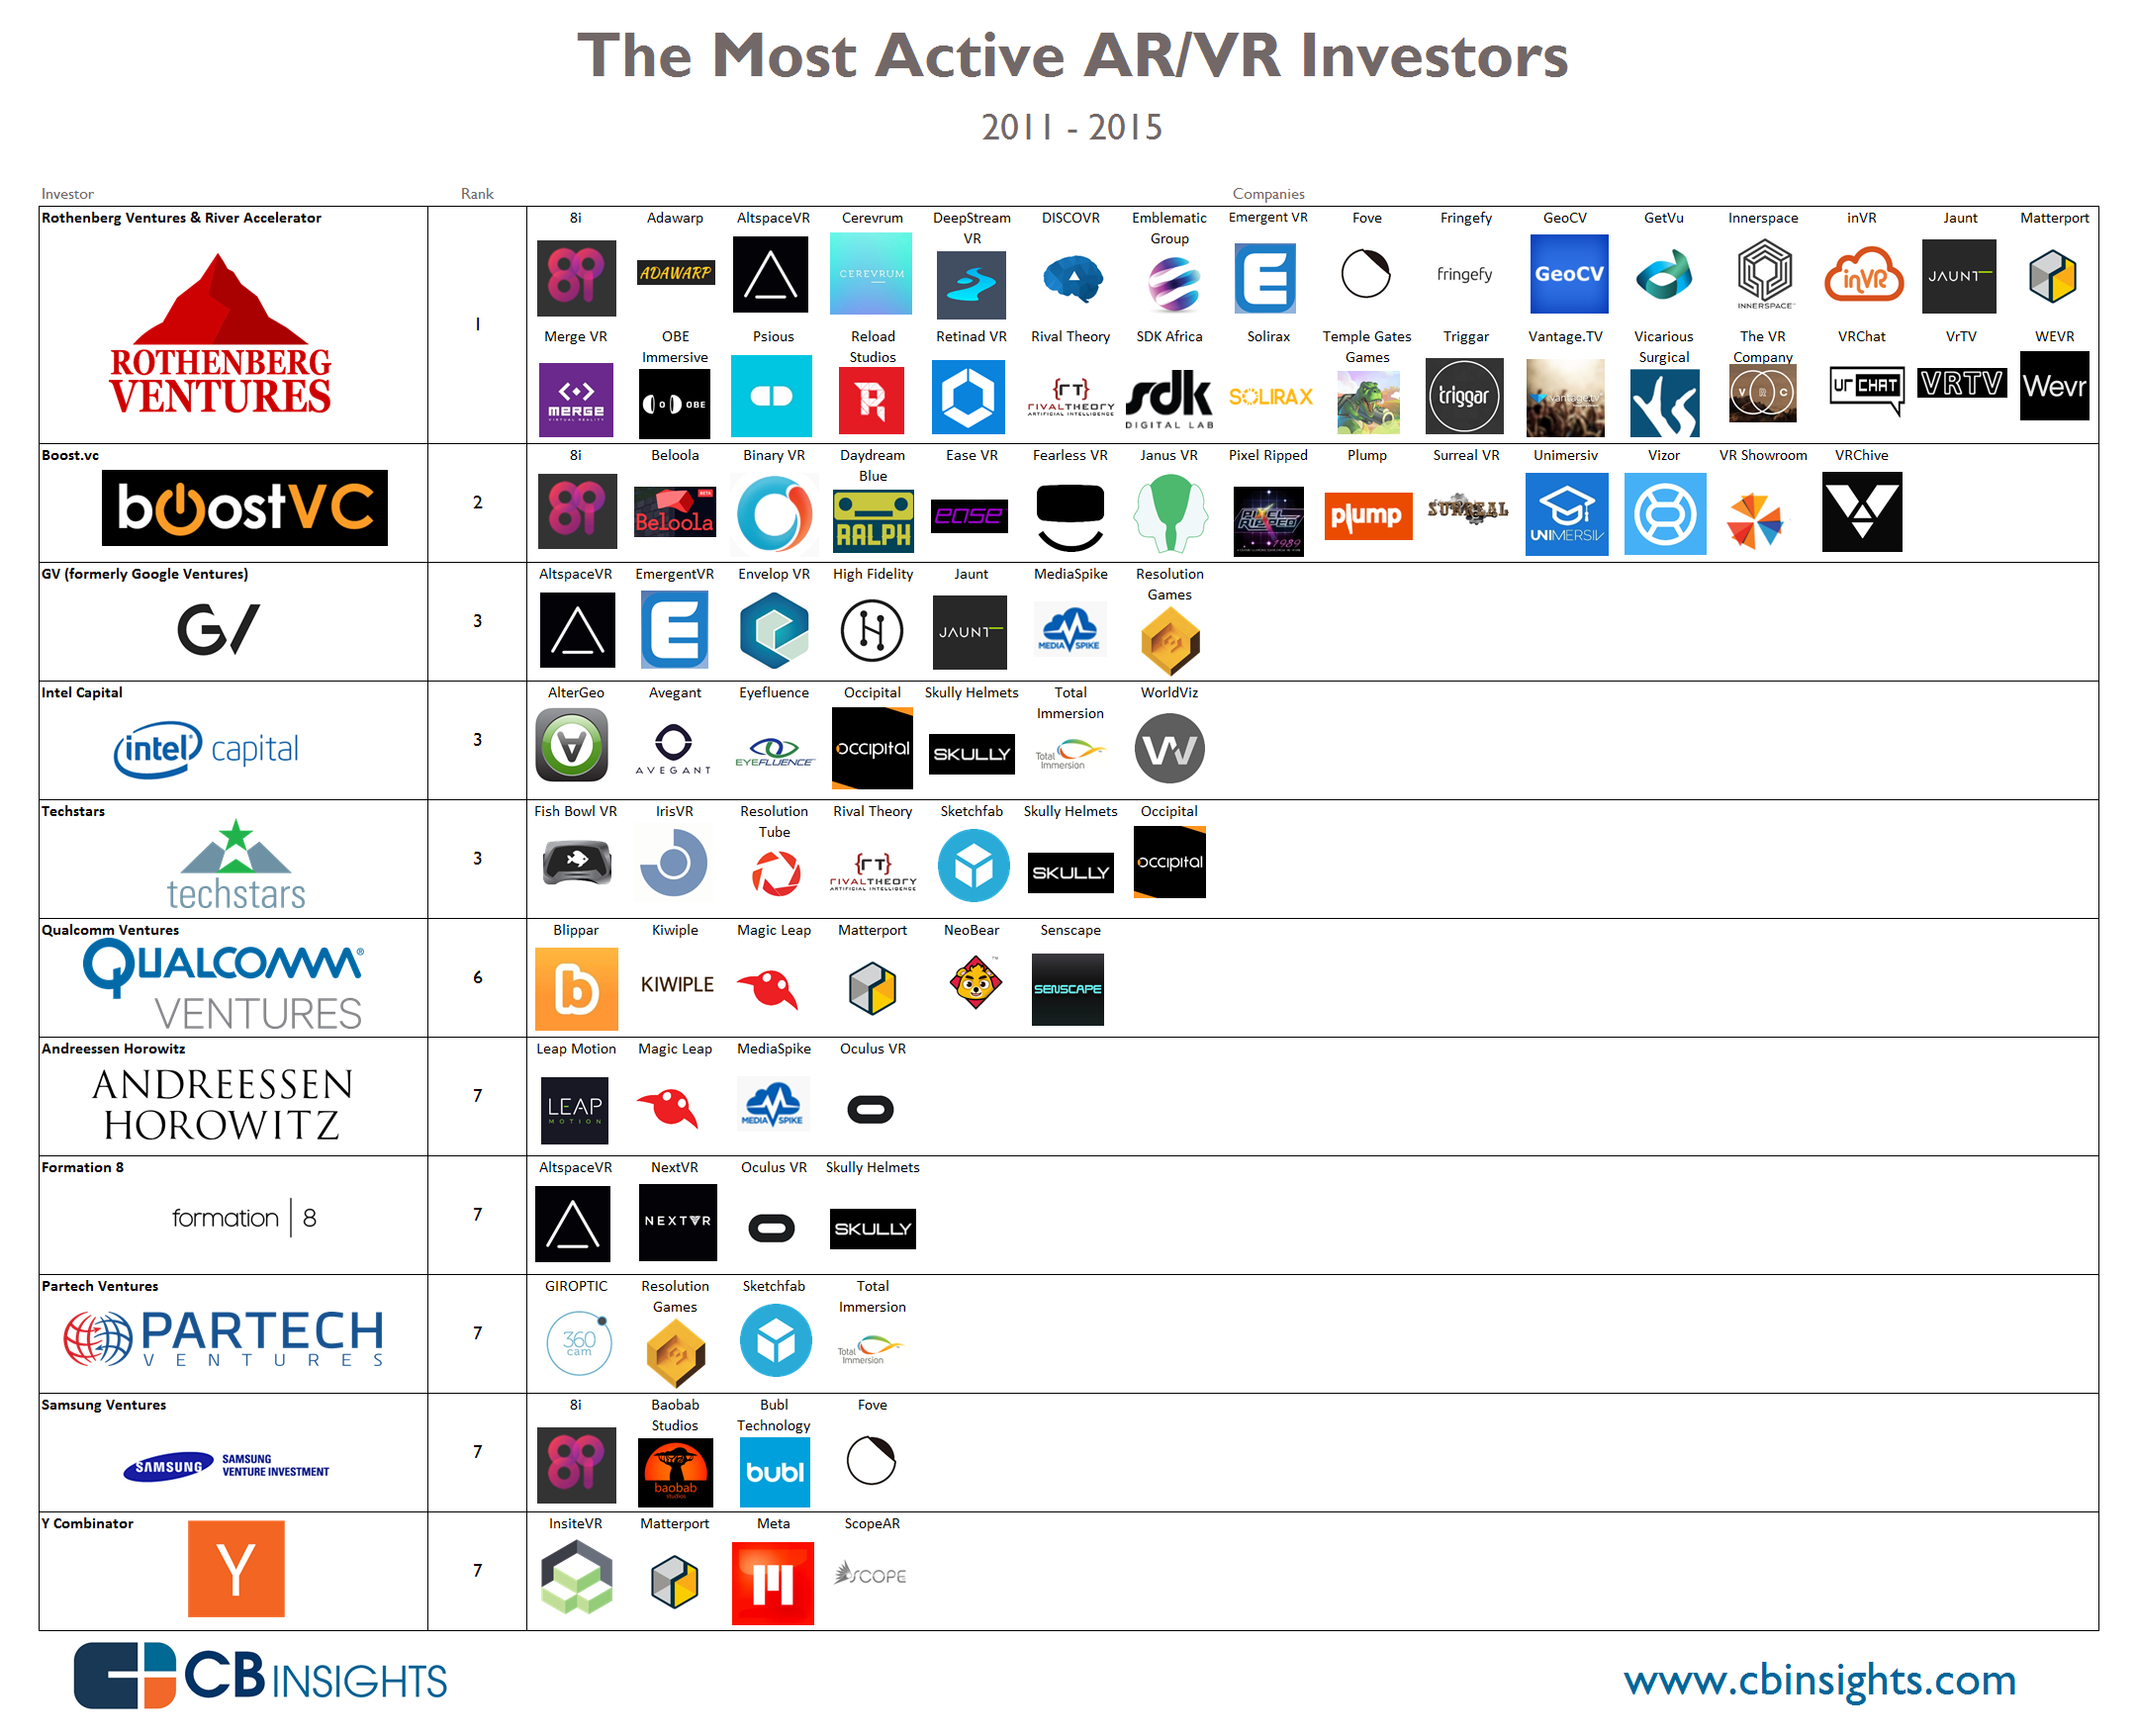 fb3b664aa63e We ranked the top VCs and corporate VC investors in AR VR and visualized  their portfolio companies. Top investors included Rothenberg